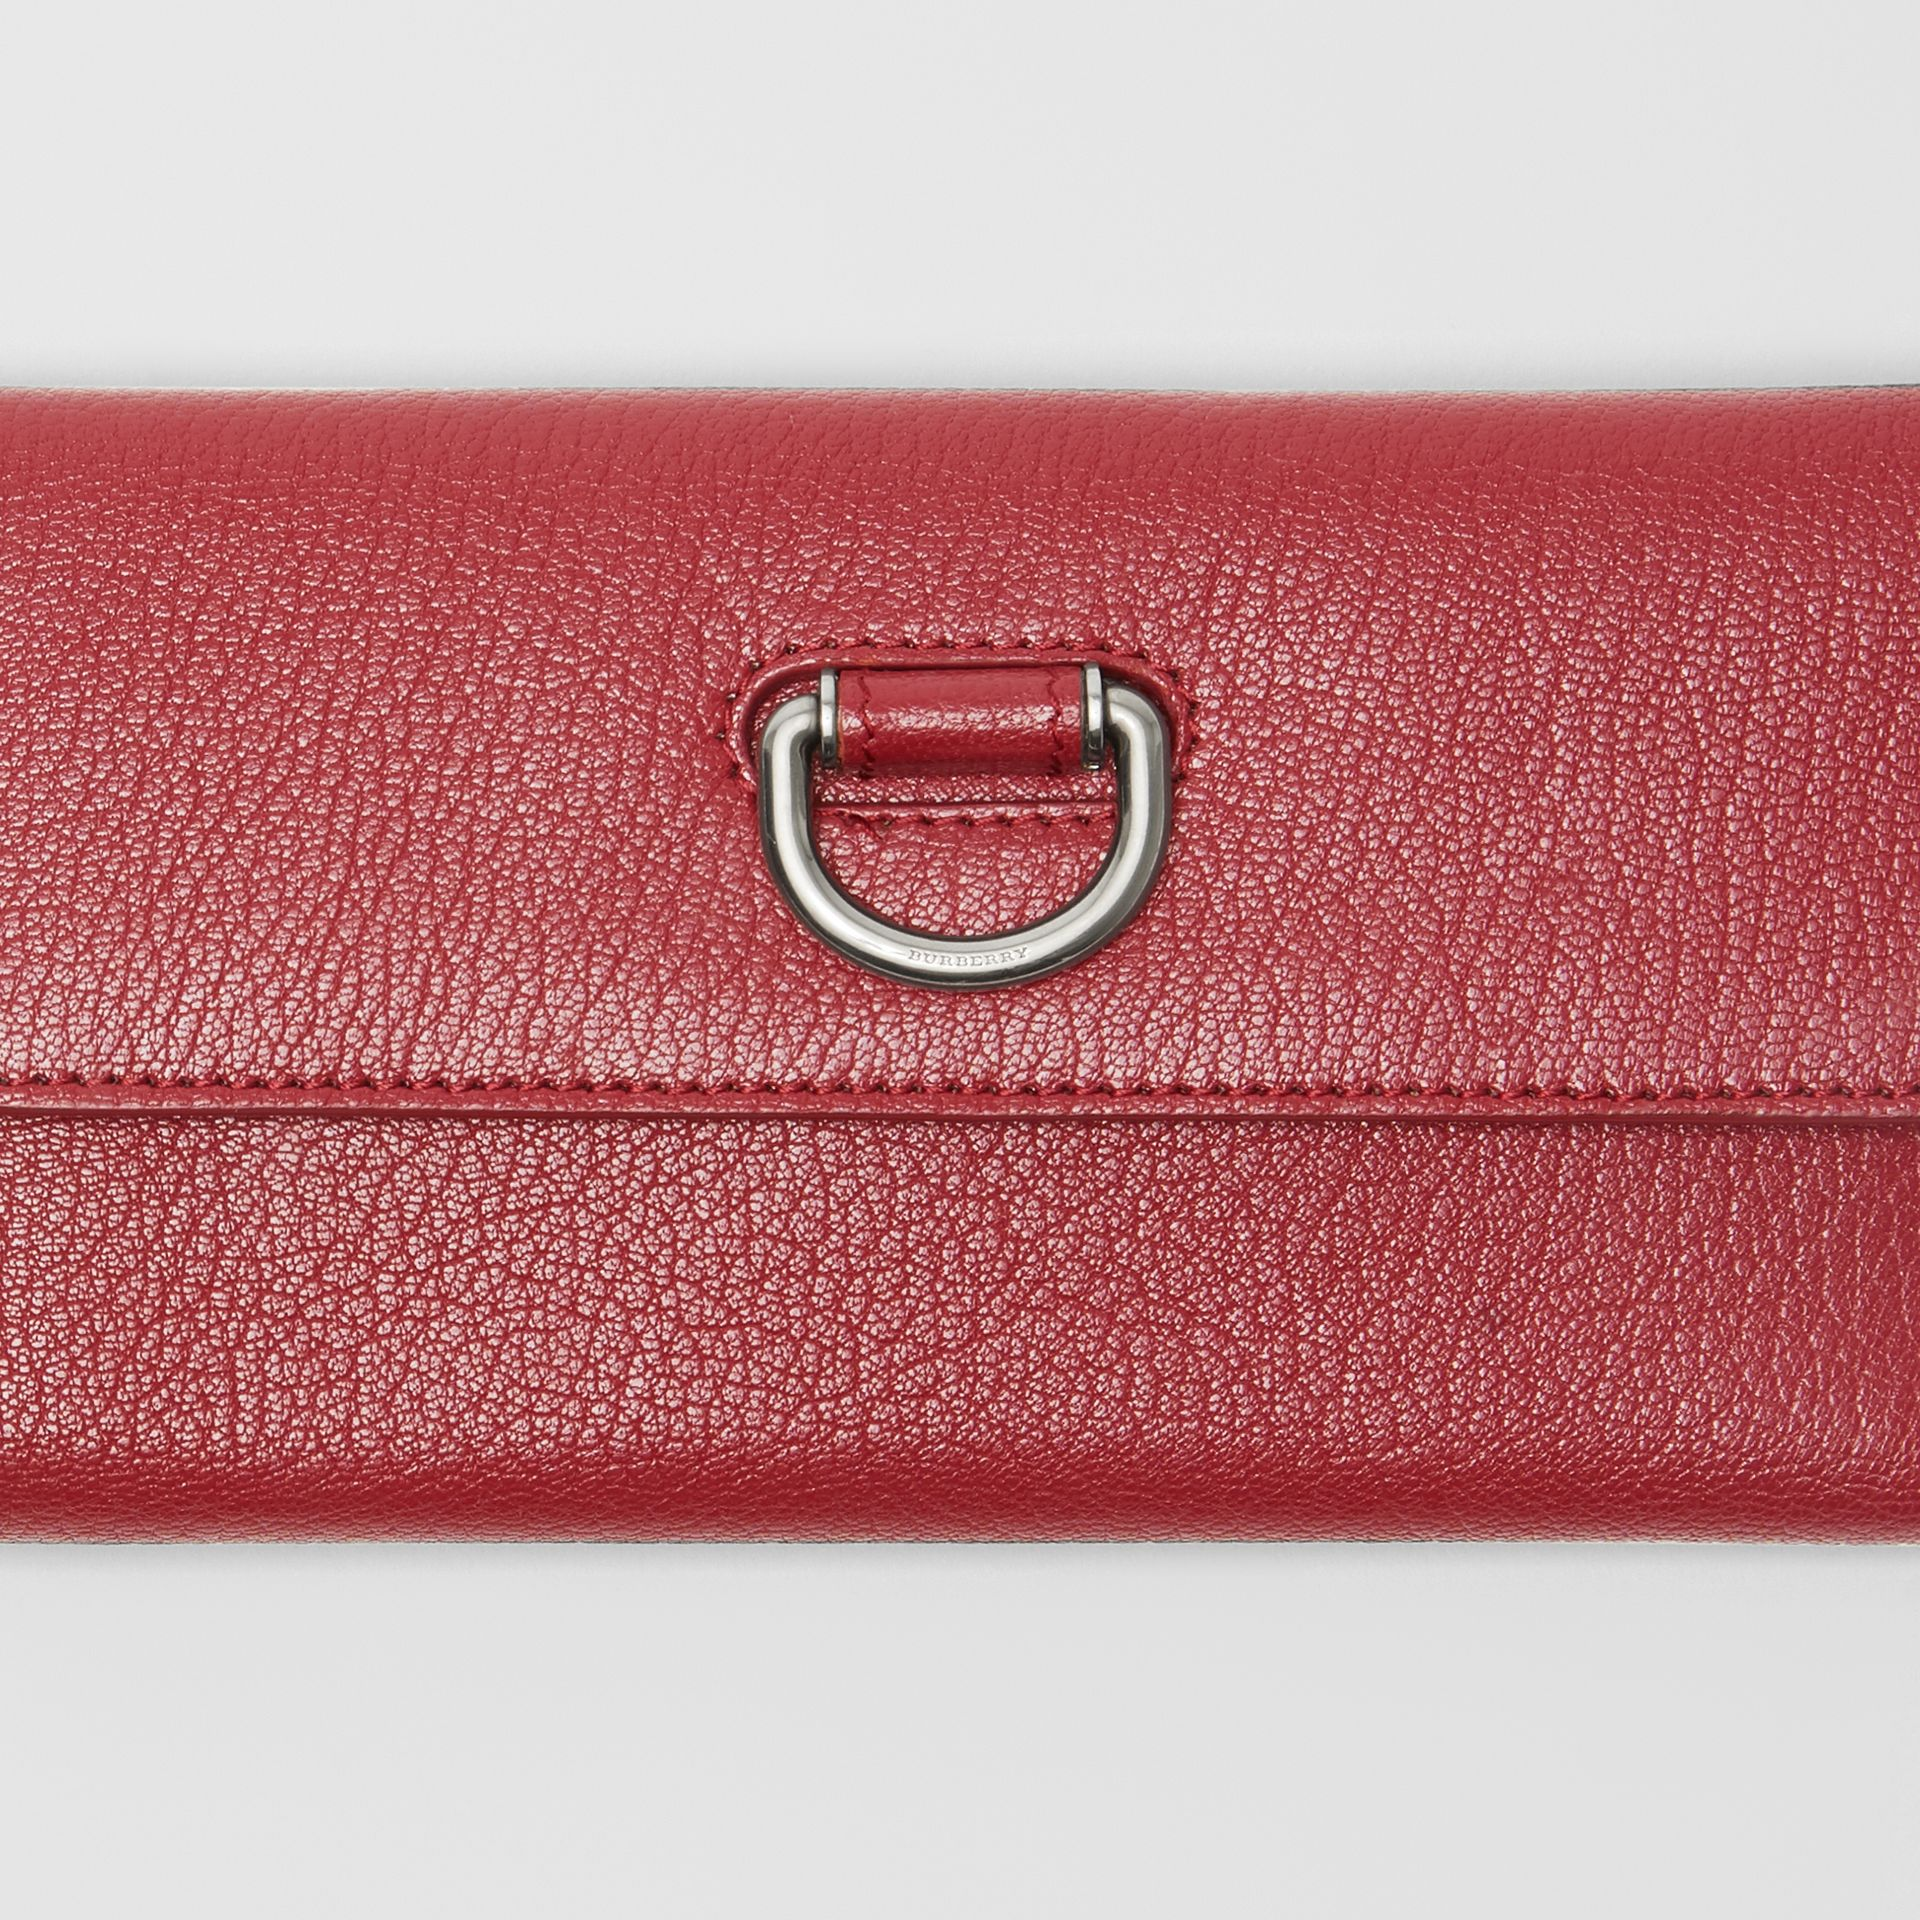 D-ring Grainy Leather Continental Wallet in Crimson - Women | Burberry - gallery image 1